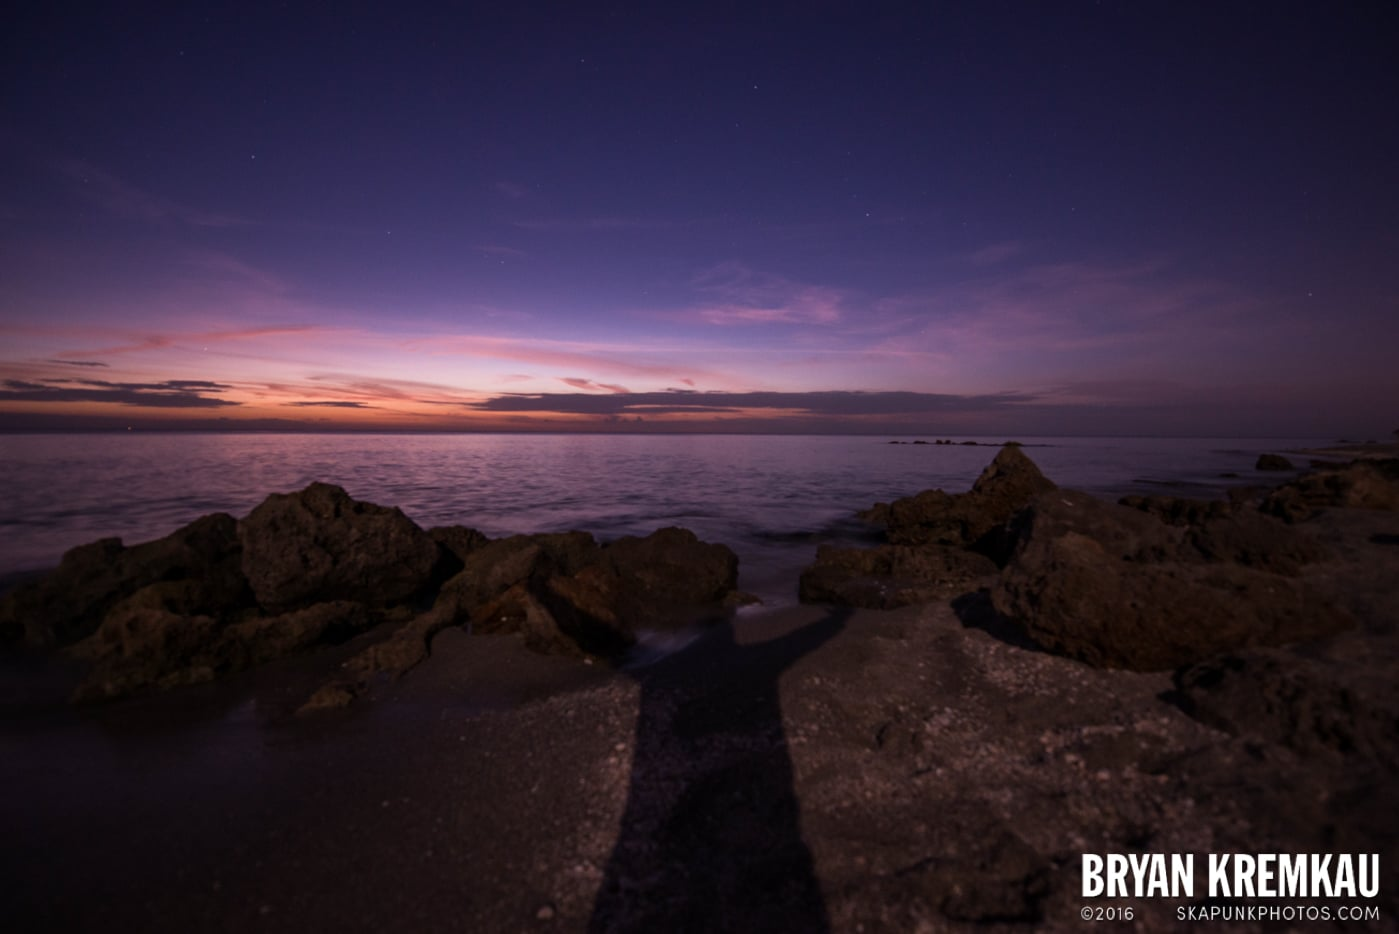 Sunsets, Astrophotography & Birds @ Venice, Florida - 10.25.14 - 11.5.14 (49)